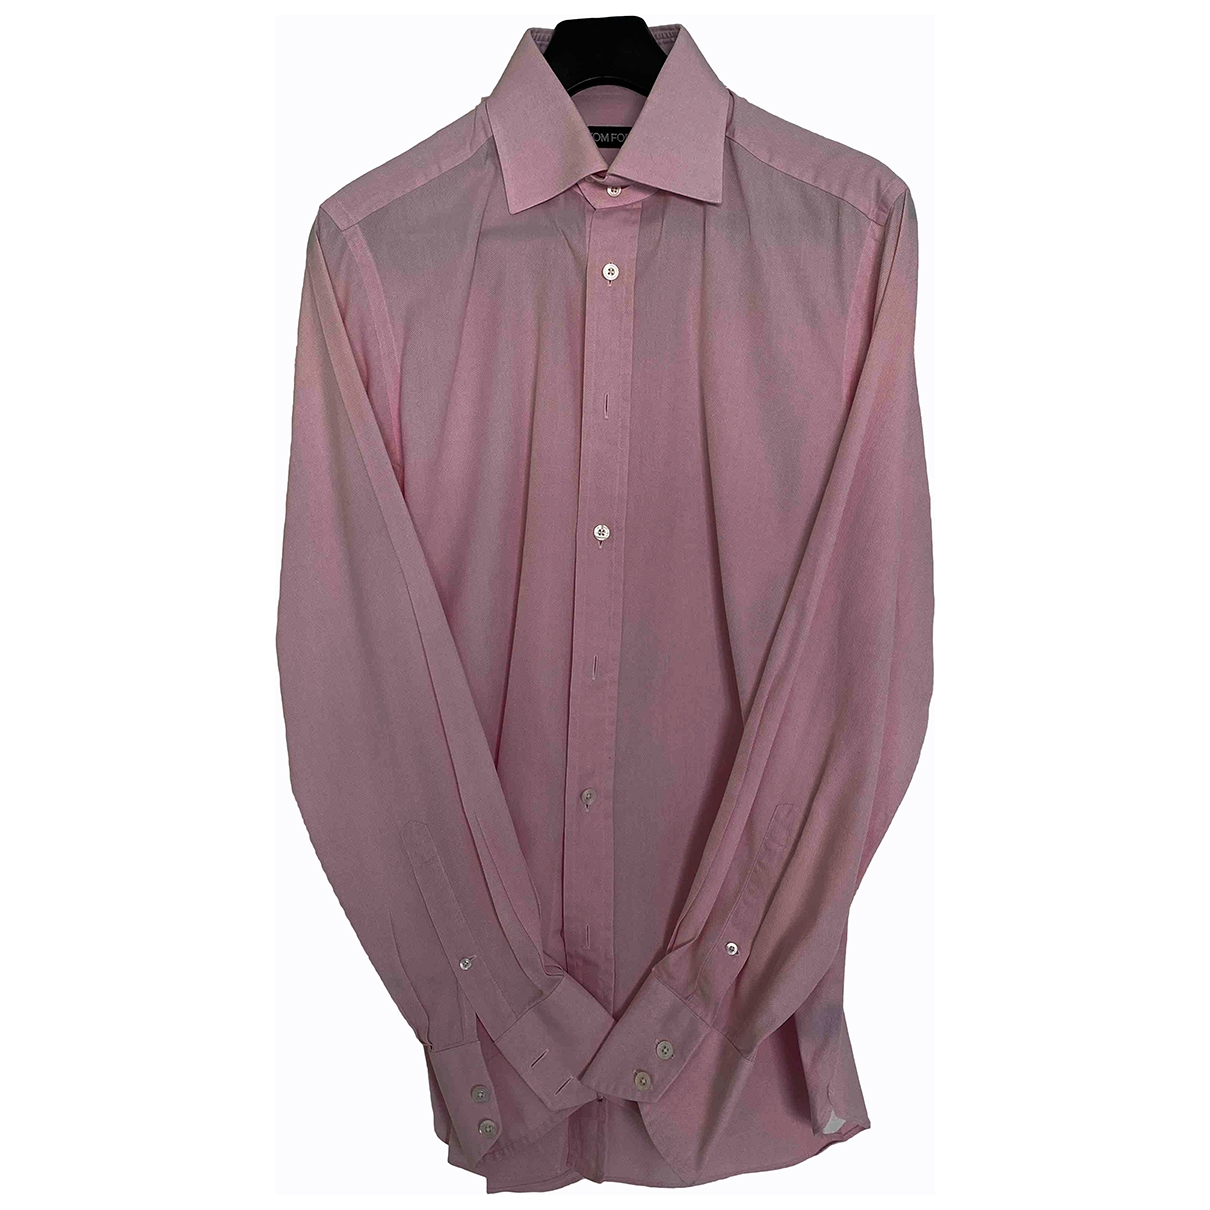 Tom Ford \N Pink Cotton Shirts for Men 41 EU (tour de cou / collar)